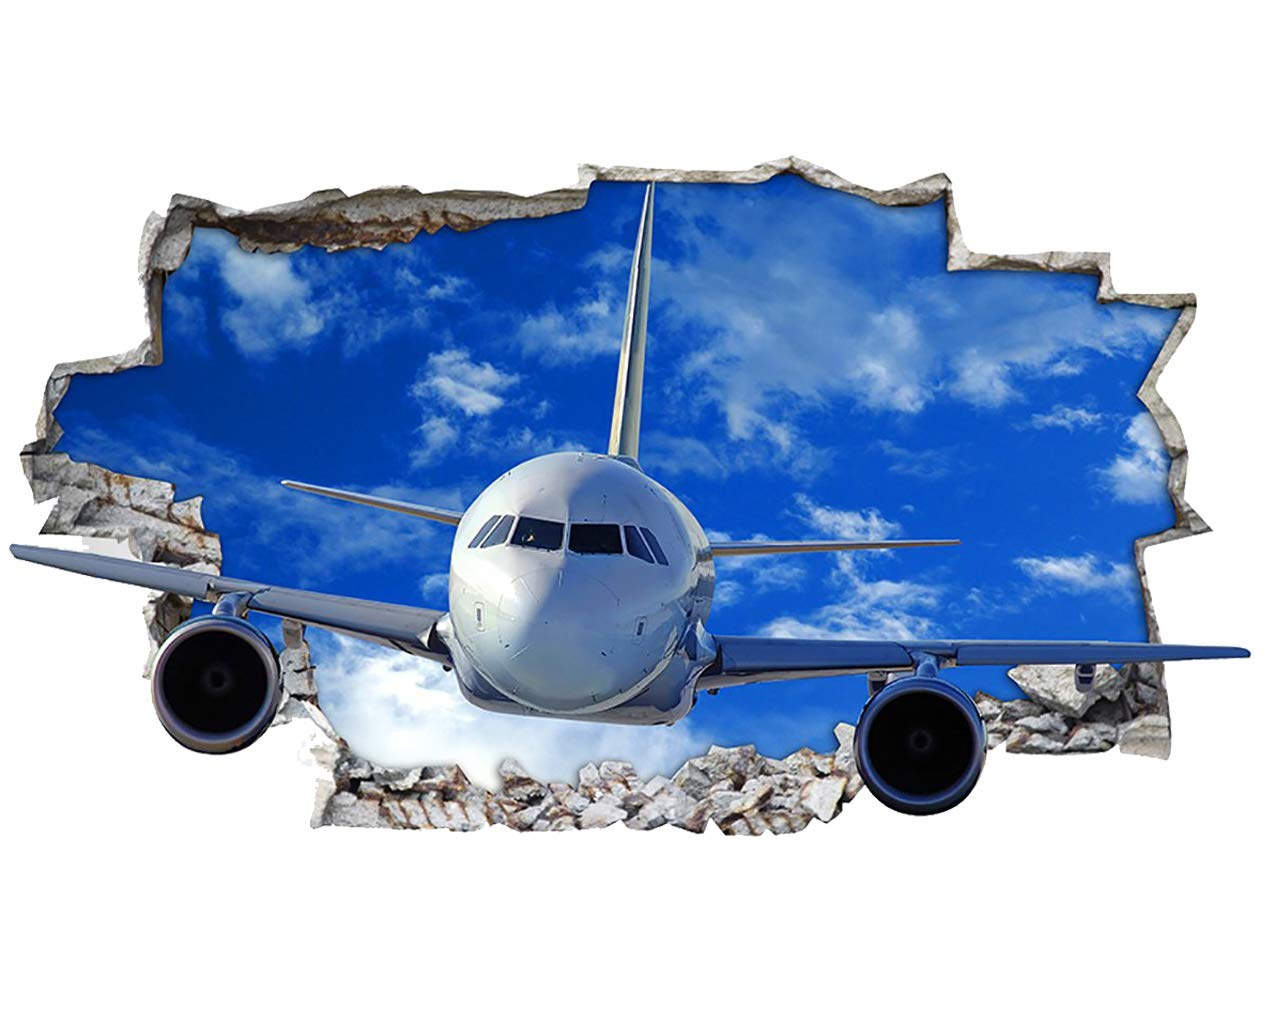 Wall Stickers Jet Plane Smashed Boys Cool  Decal Poster 3D Art  Vinyl Room H002